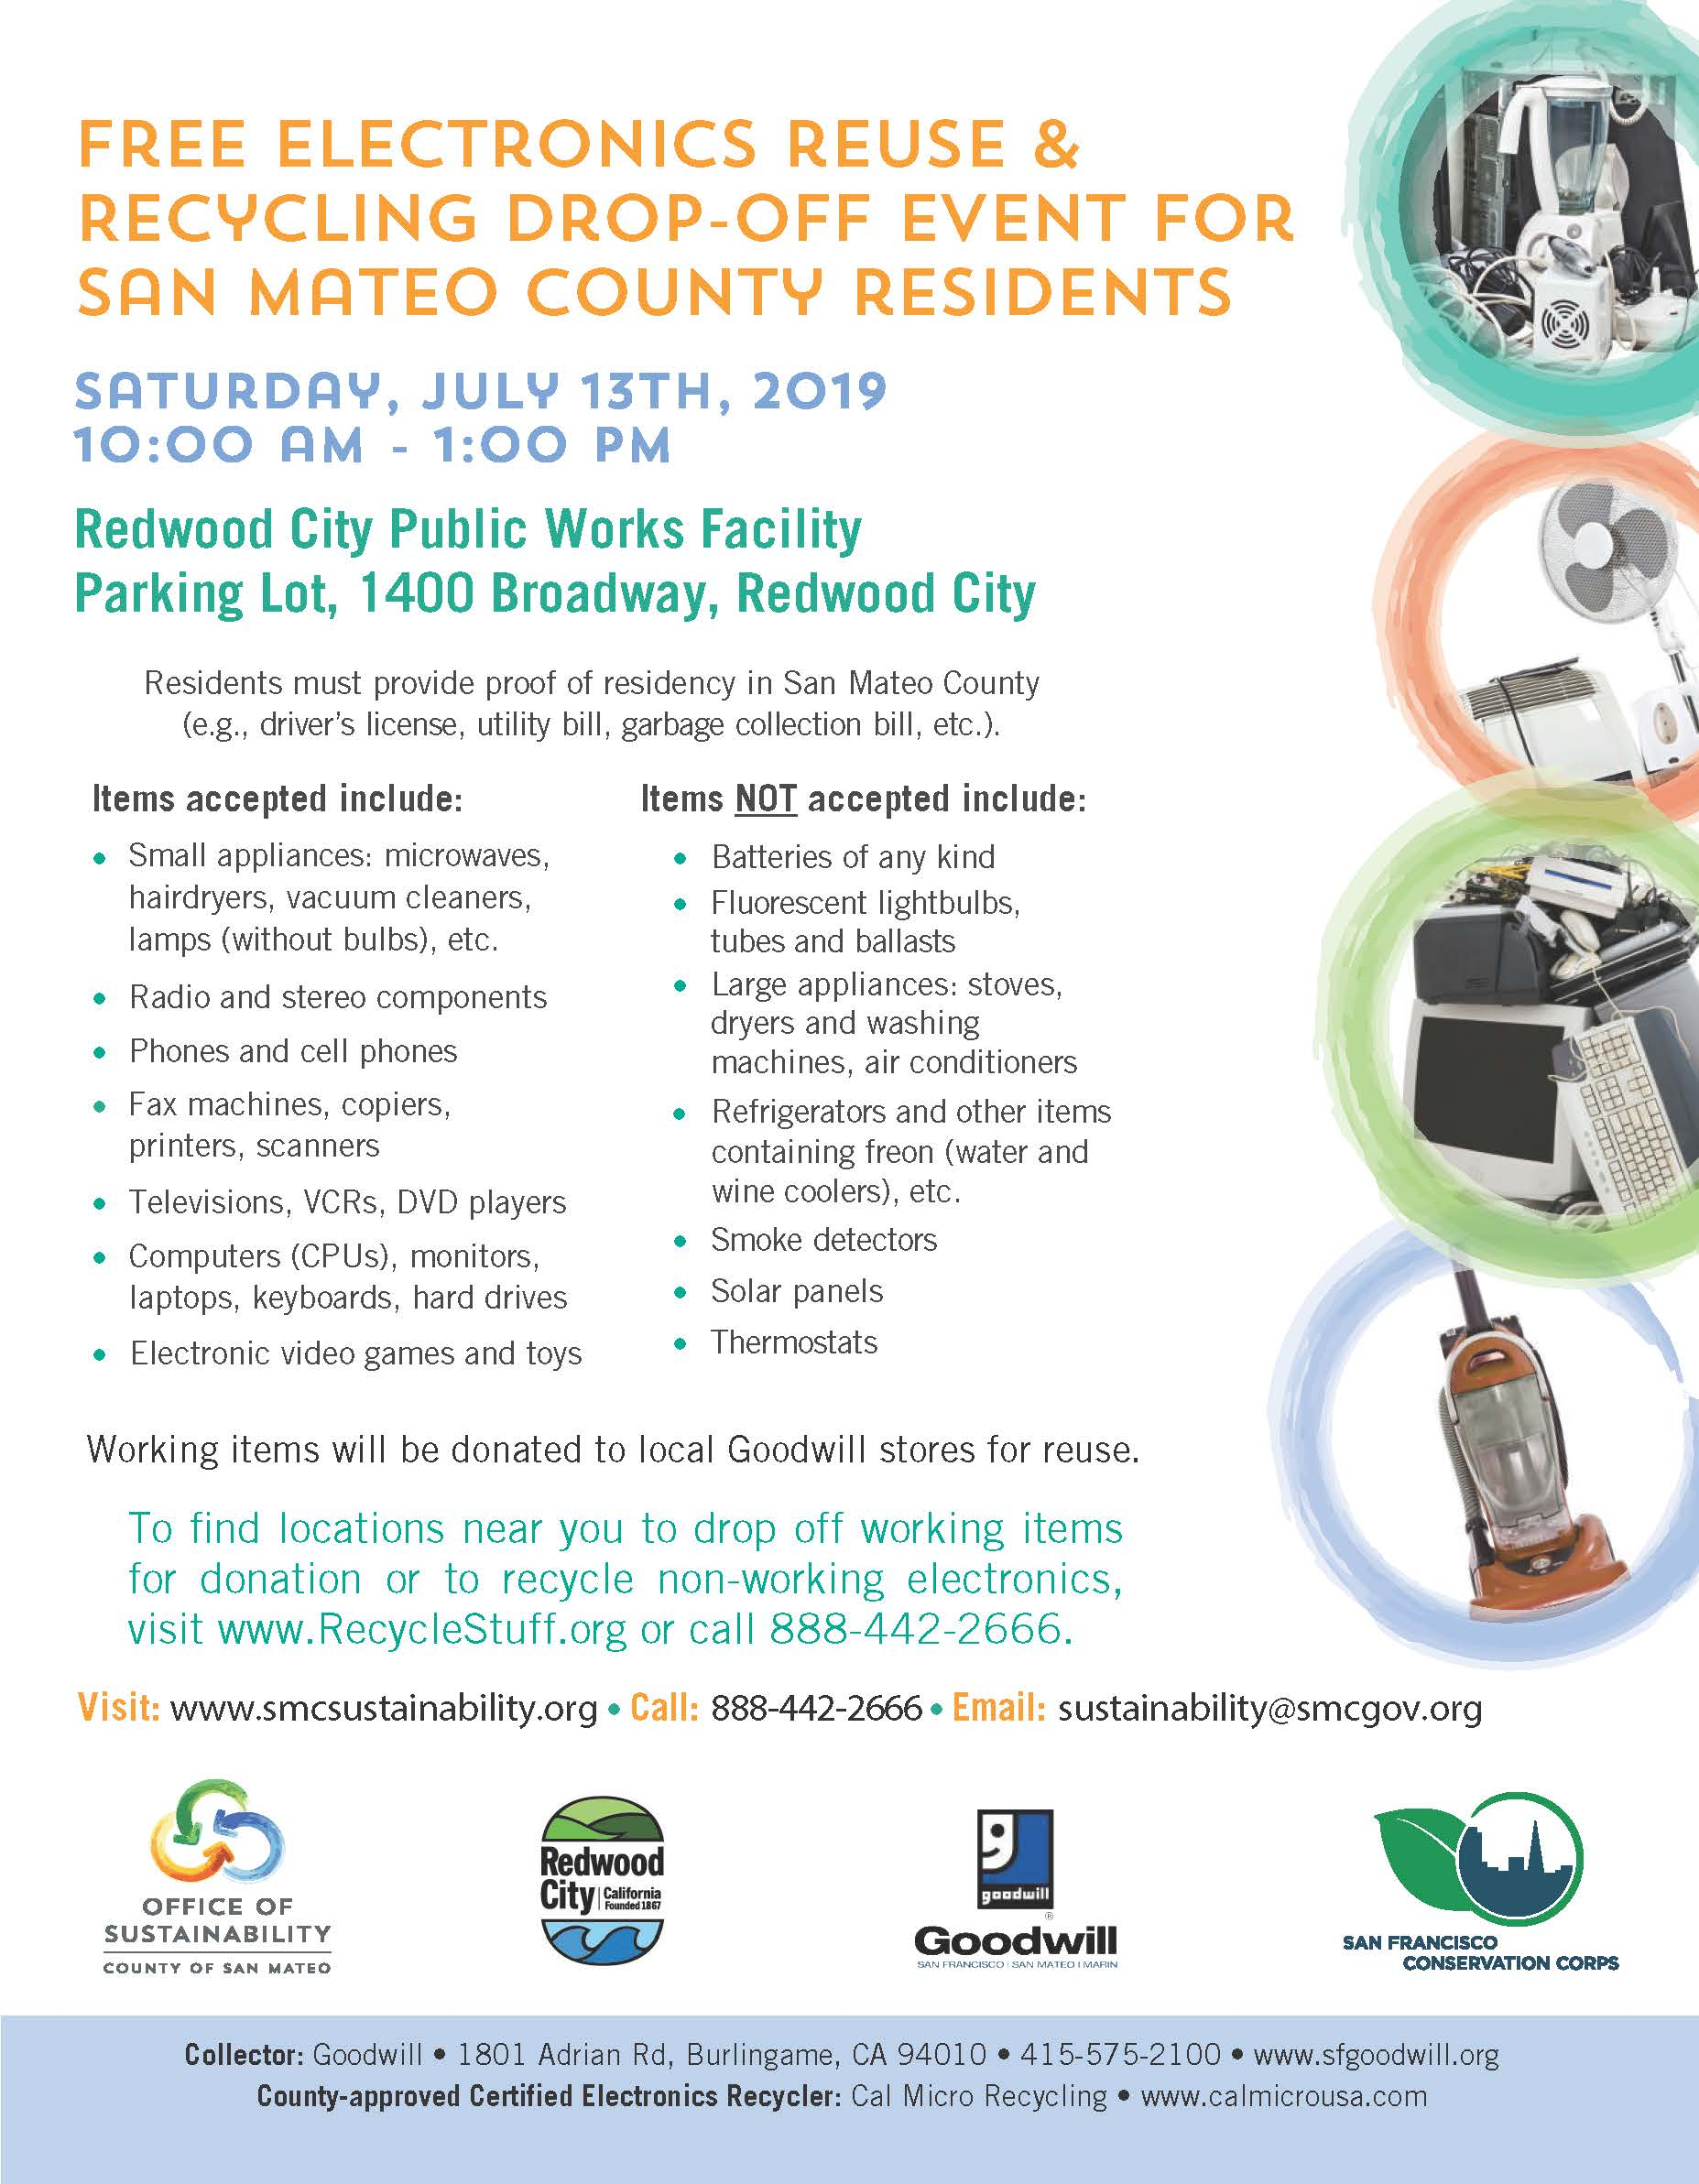 FREE Electronics Reuse & Recycling Drop-Off | City Events